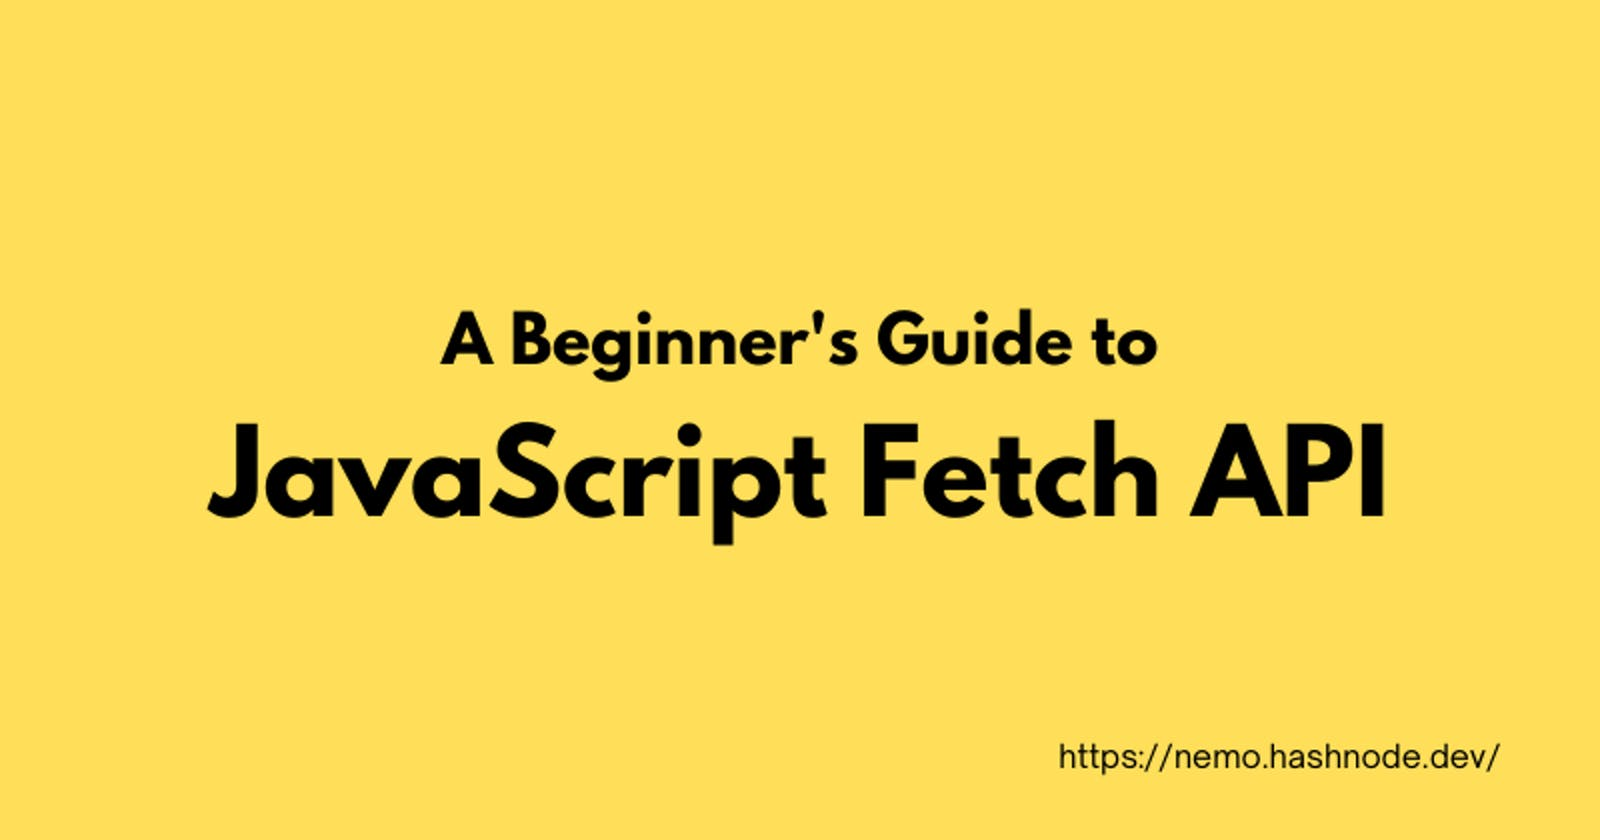 A Beginner's Guide to the JavaScript Fetch API 🦀